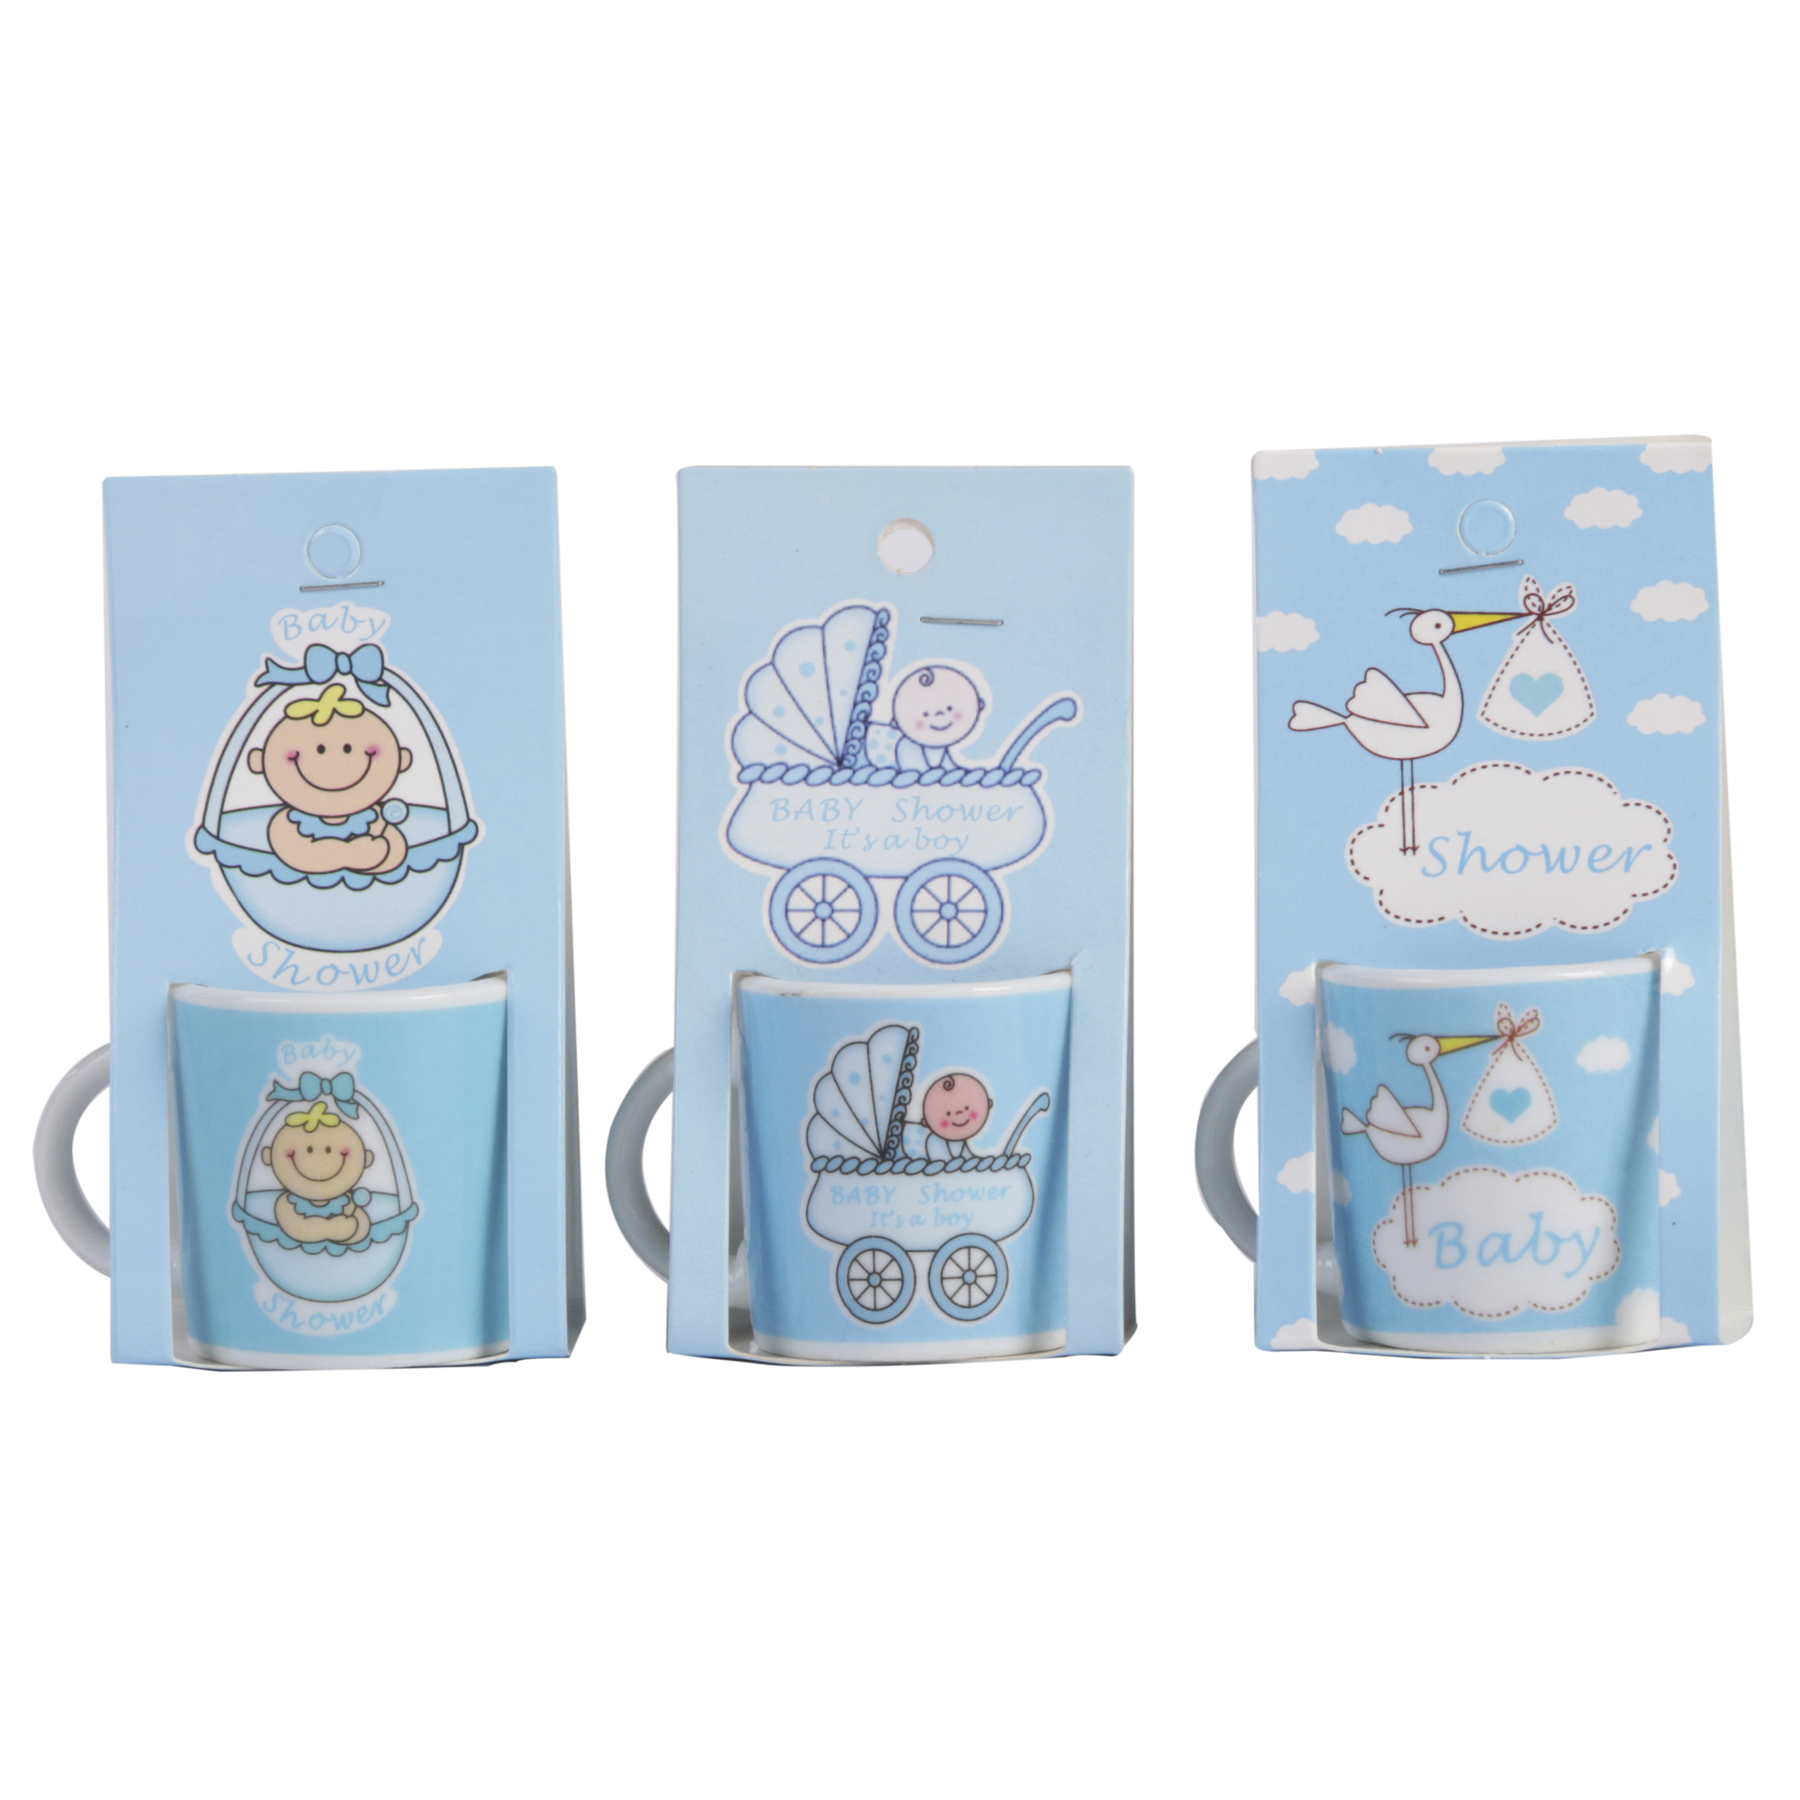 Lot Of 10 Cups Christening BLUE CHILD Small In Blister Gift-Details And Gifts For Memories Baptisms, Birthday